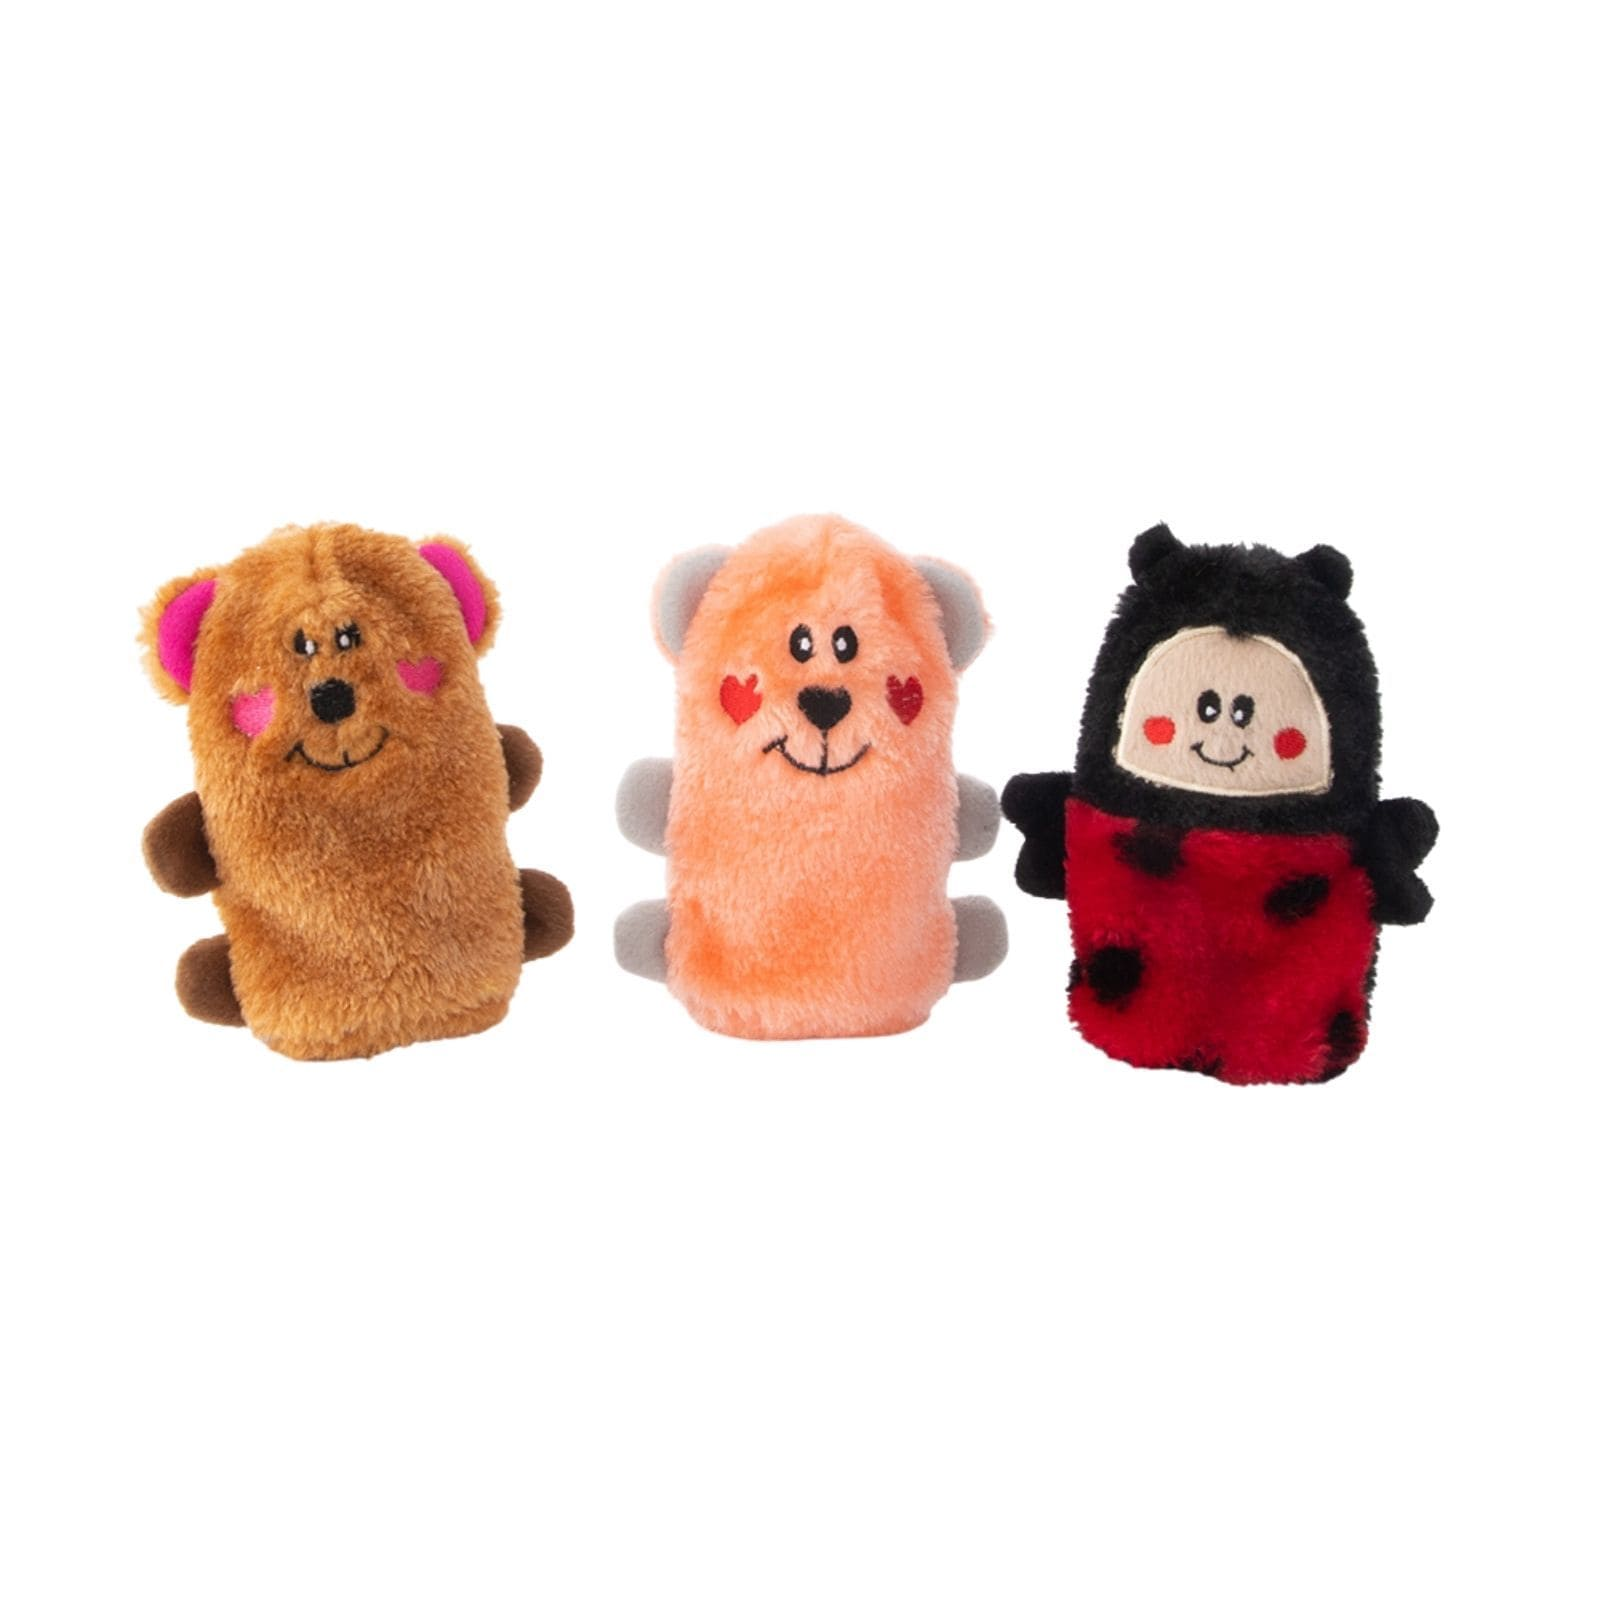 Zippy Paws Valentine's Squeakie Buddies - Pack of 3 Dog Toys